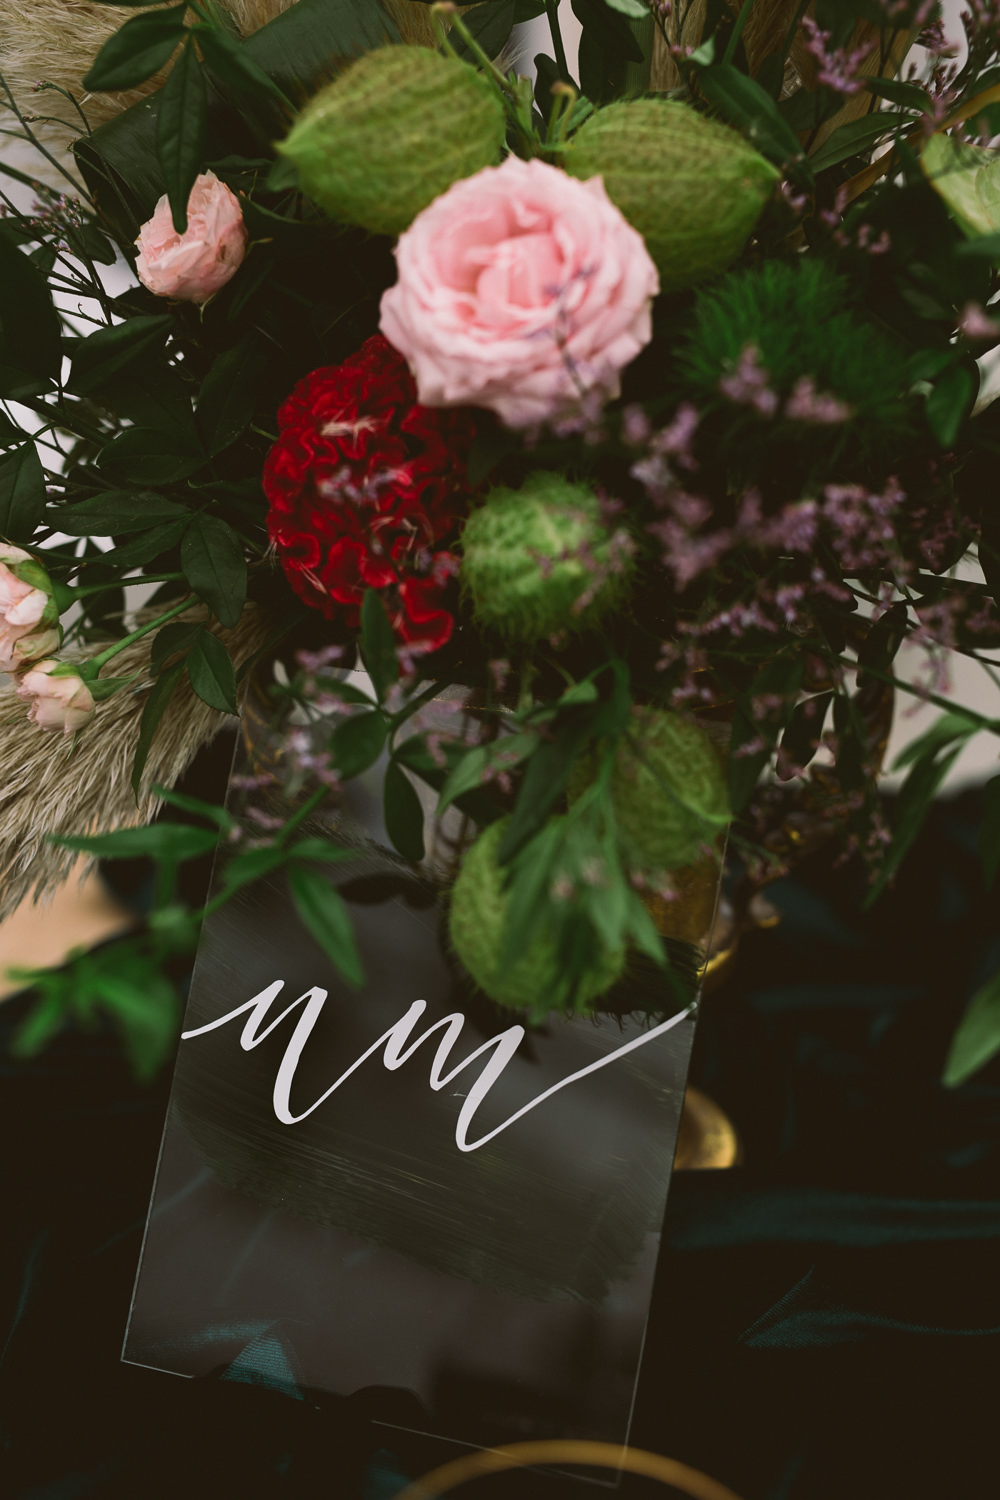 Table Flowers Centrepiece Pink Red Rose Greenery Foliage Perspex Acrylic Table Number Sign Botanical Dark Green Velvet Pampas Grass Wedding Ideas Bárbara Araújo Photography